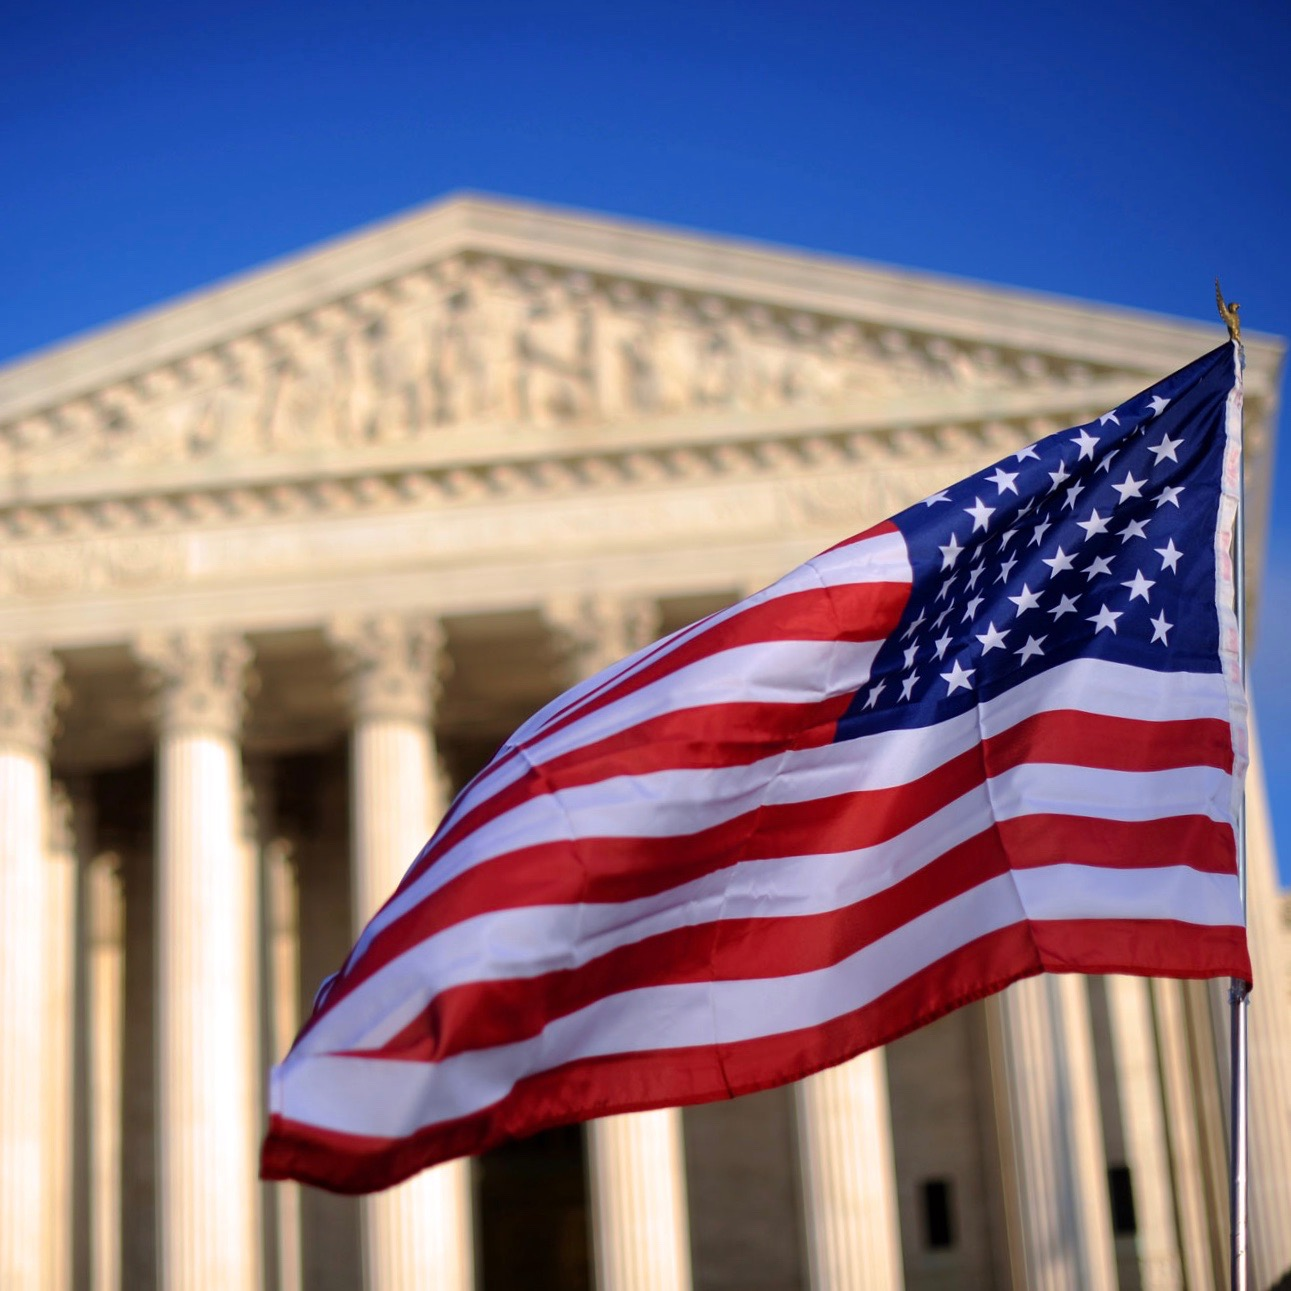 #SCOTUS Upholds President Trump's Travel Ban By Vote of 5-4 [VIDEO]